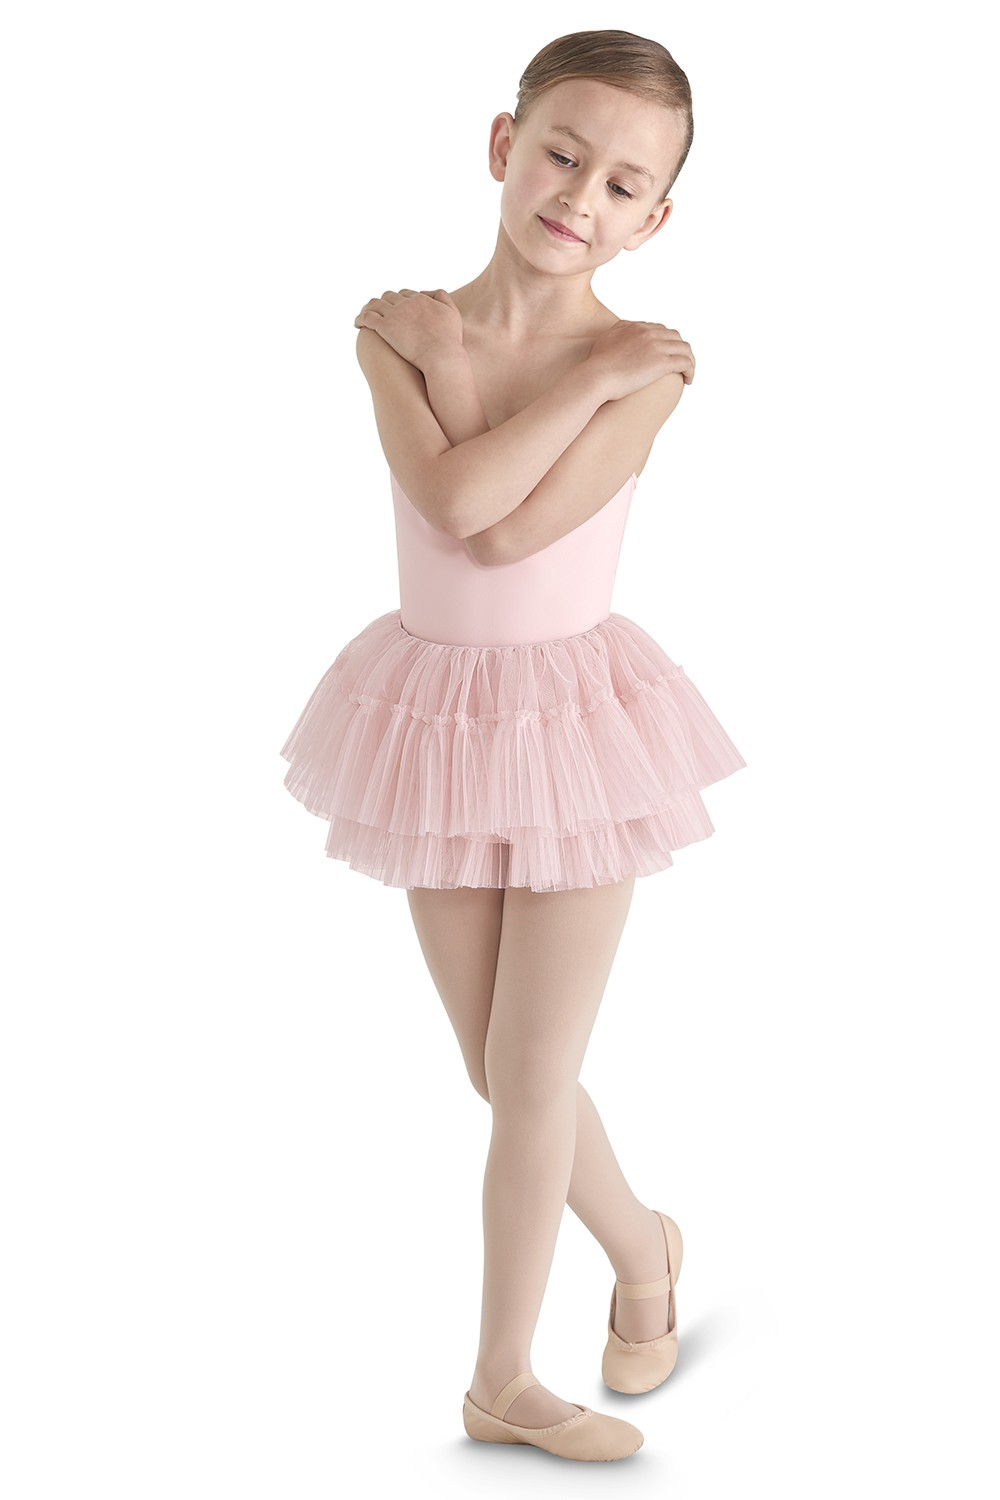 Tulle Hem Tutu Skirt Children's Dance Skirts